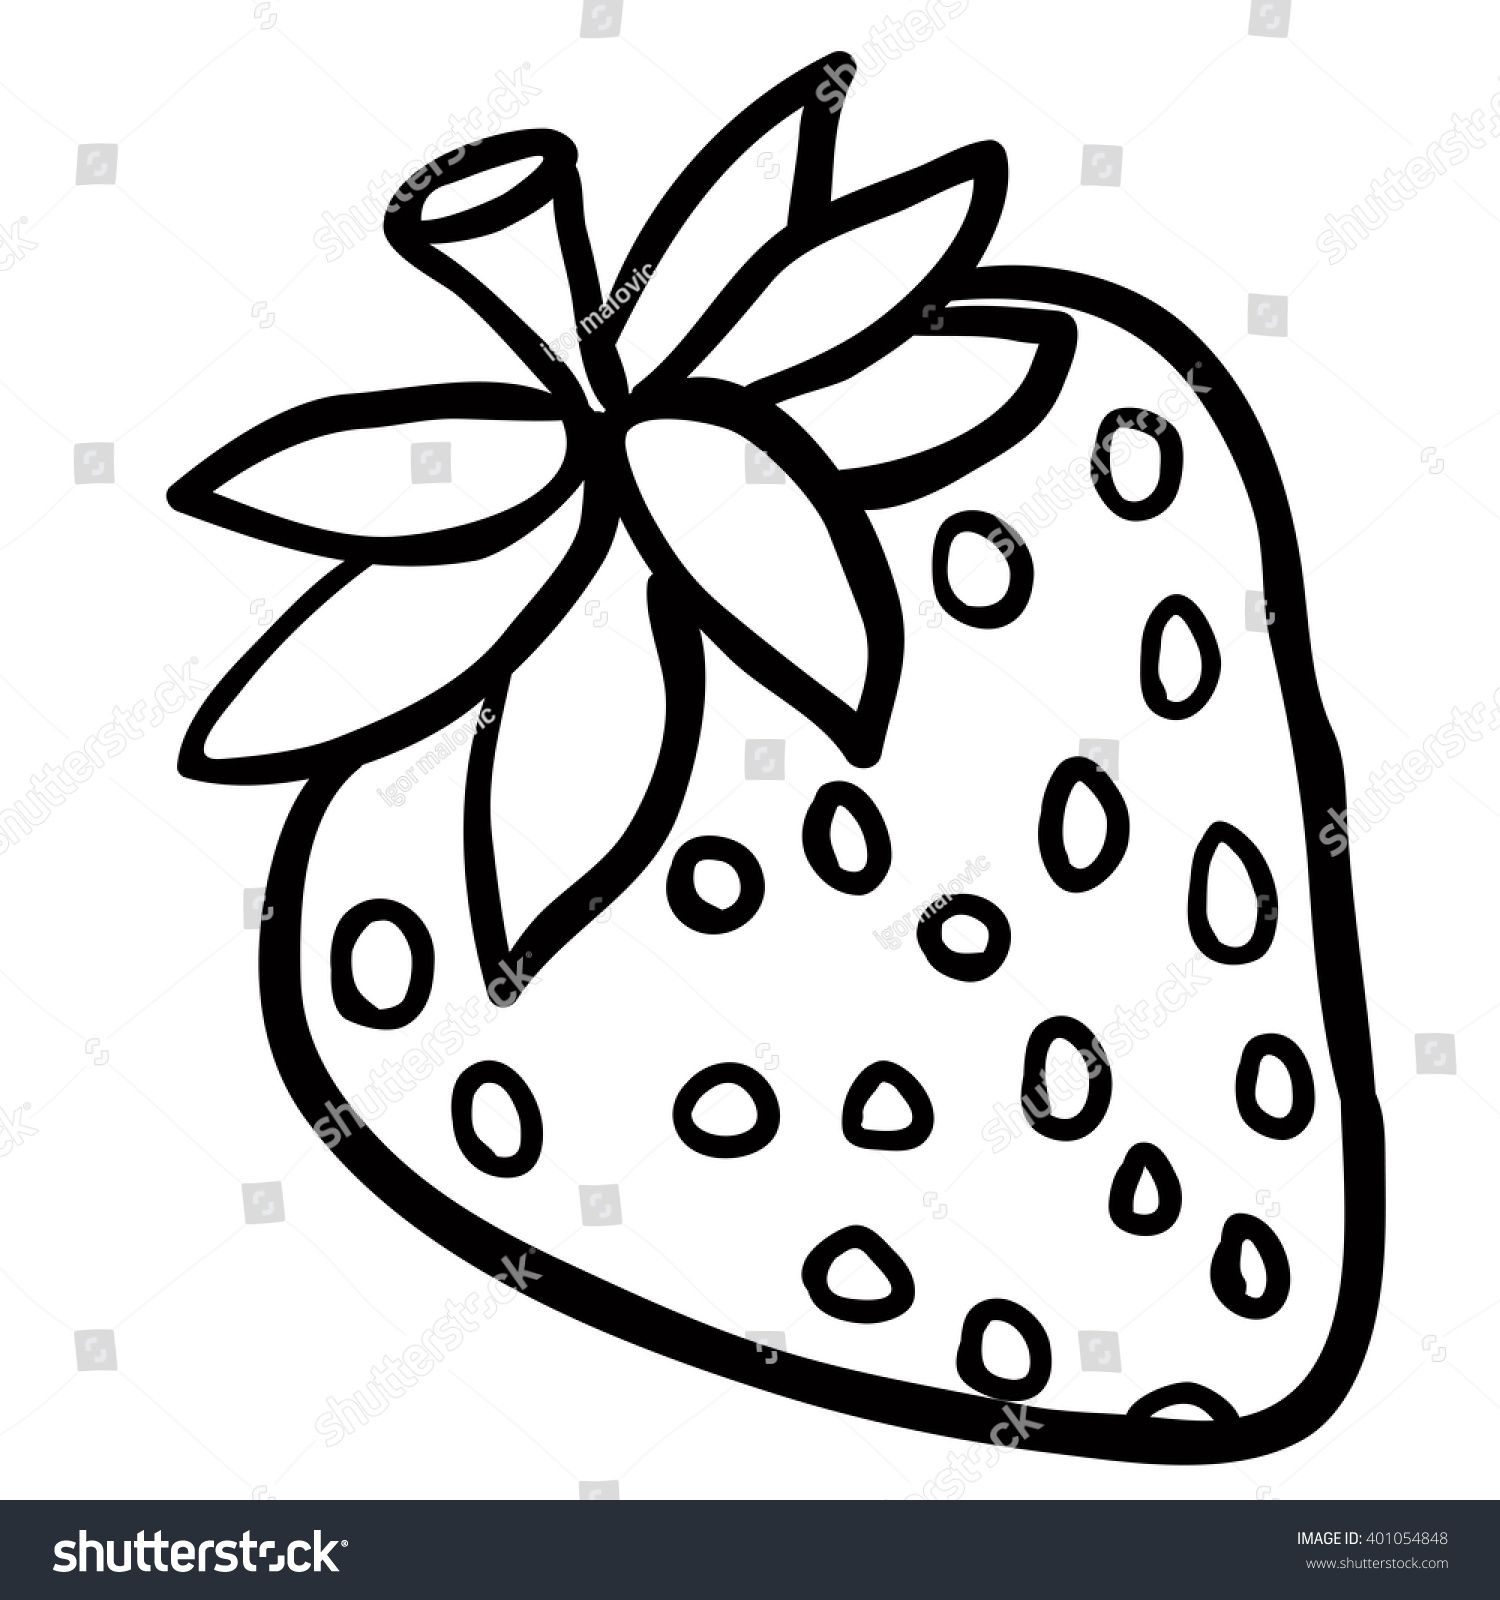 Image Result For Black And White Strawberry Images Cartoon Eyes White Background Cartoon